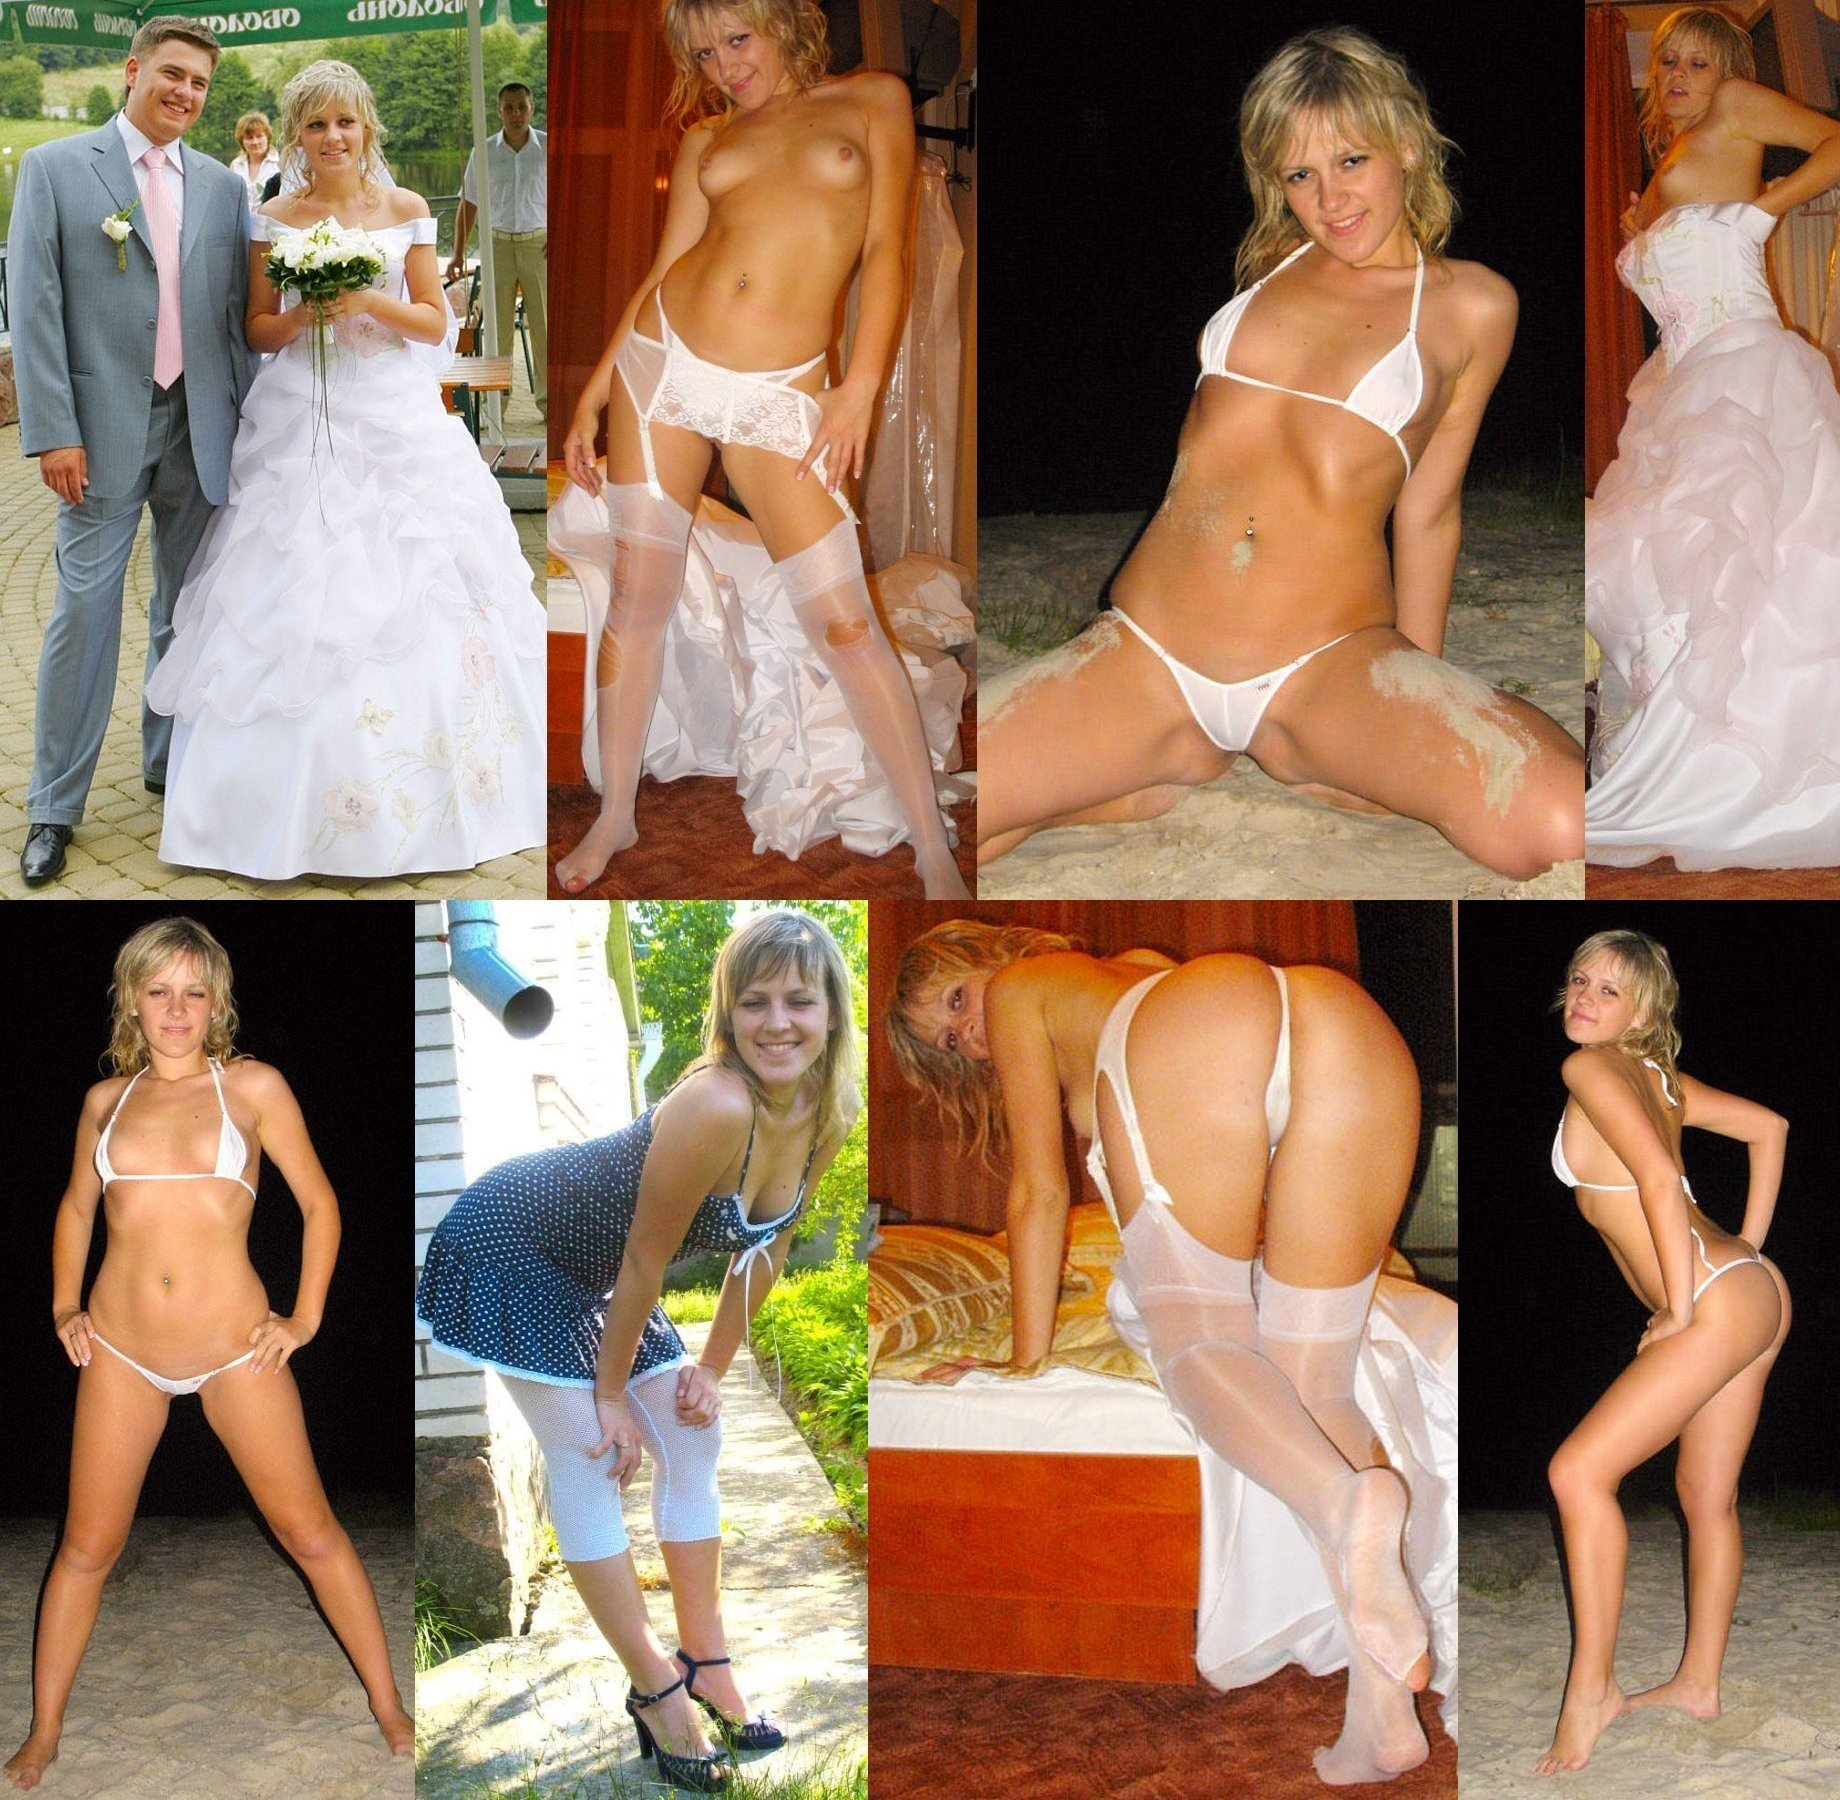 wife slut before after Let's start with a beautiful photo from the wedding and then move to what  happened at the honeymoon. This hot young wife looks both as a saint and as  a slut ...